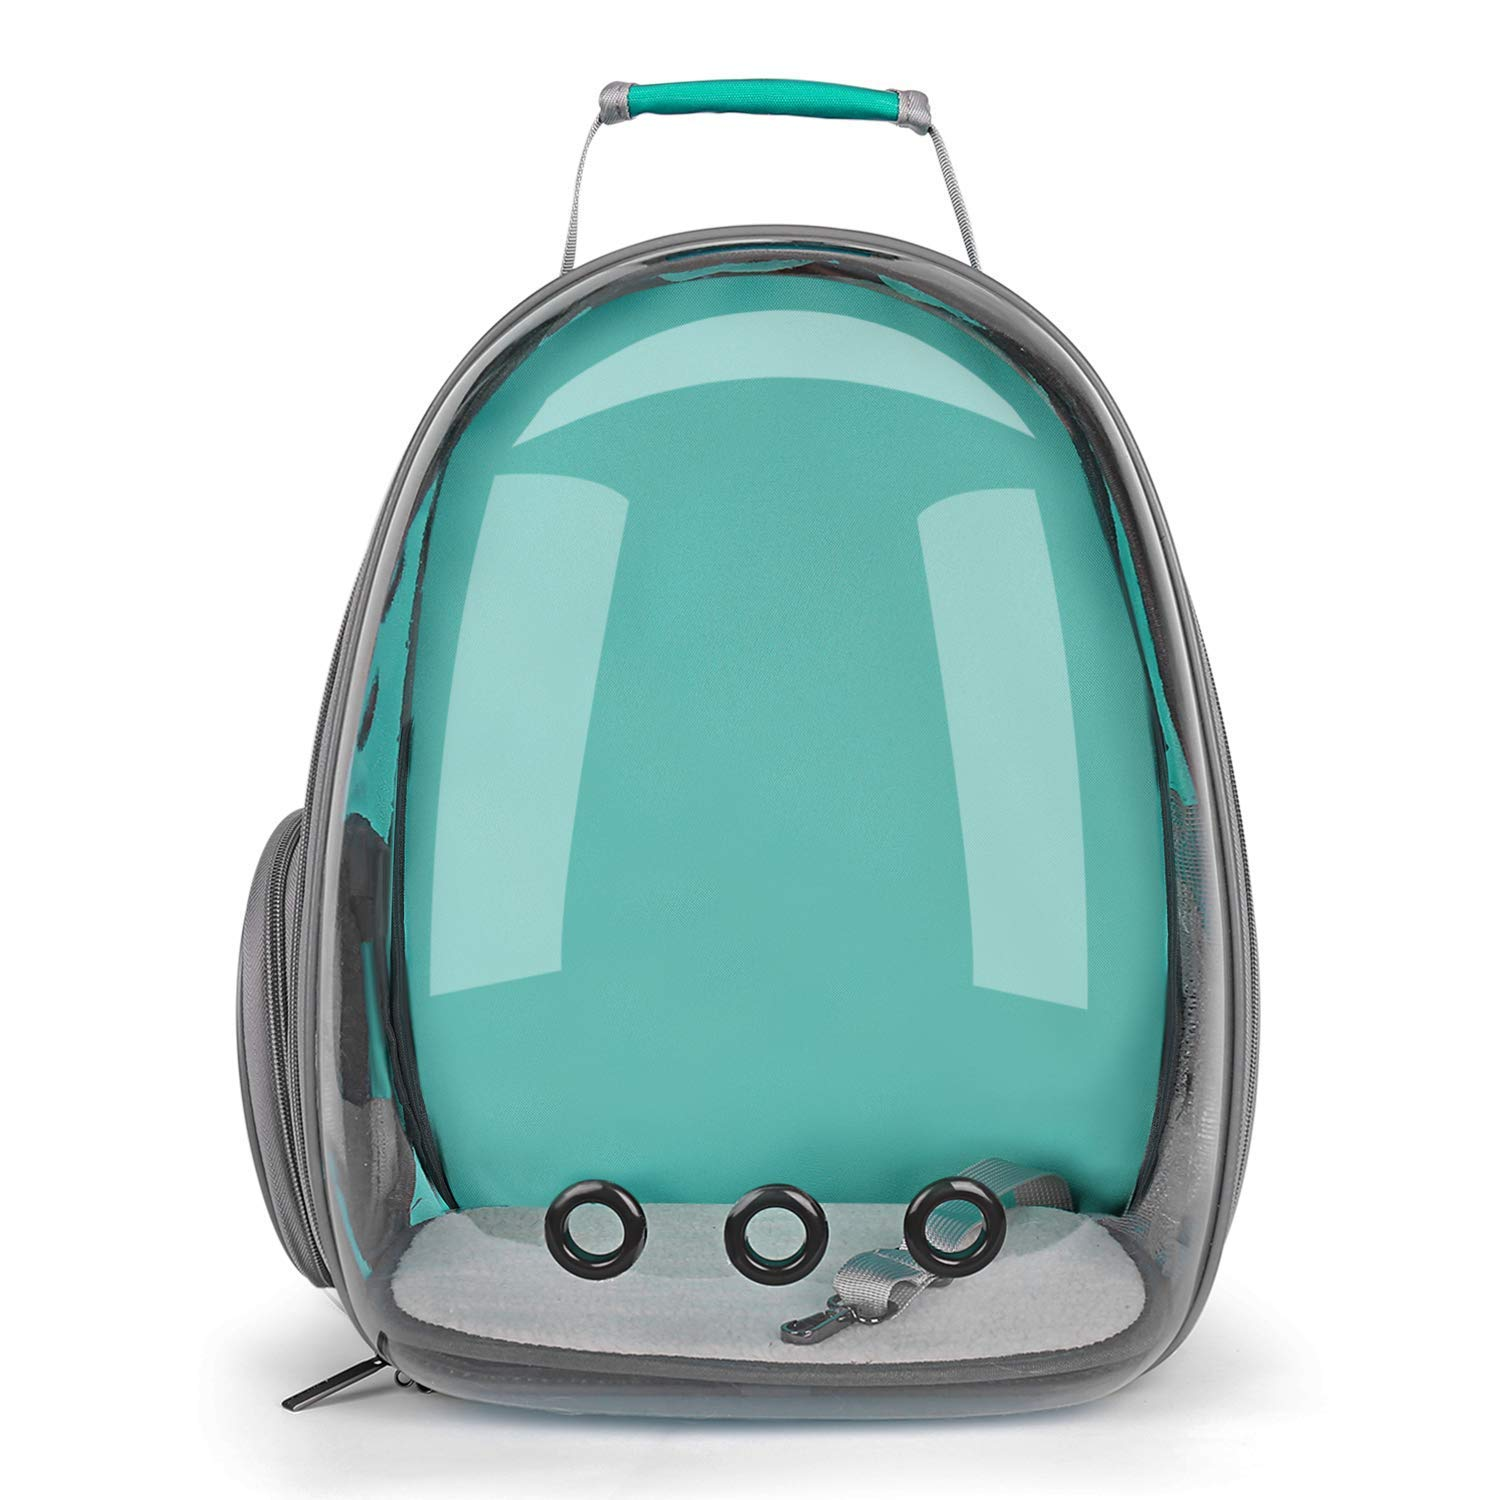 Transparent-Mint Green Texsens Pet Backpack Carrier for Small Cats Dogs   Broad View, Ventilated Design, Safety Straps, Buckle Support   Designed for Travel, Hiking & Outdoor Use(Transparent-Mint Green)